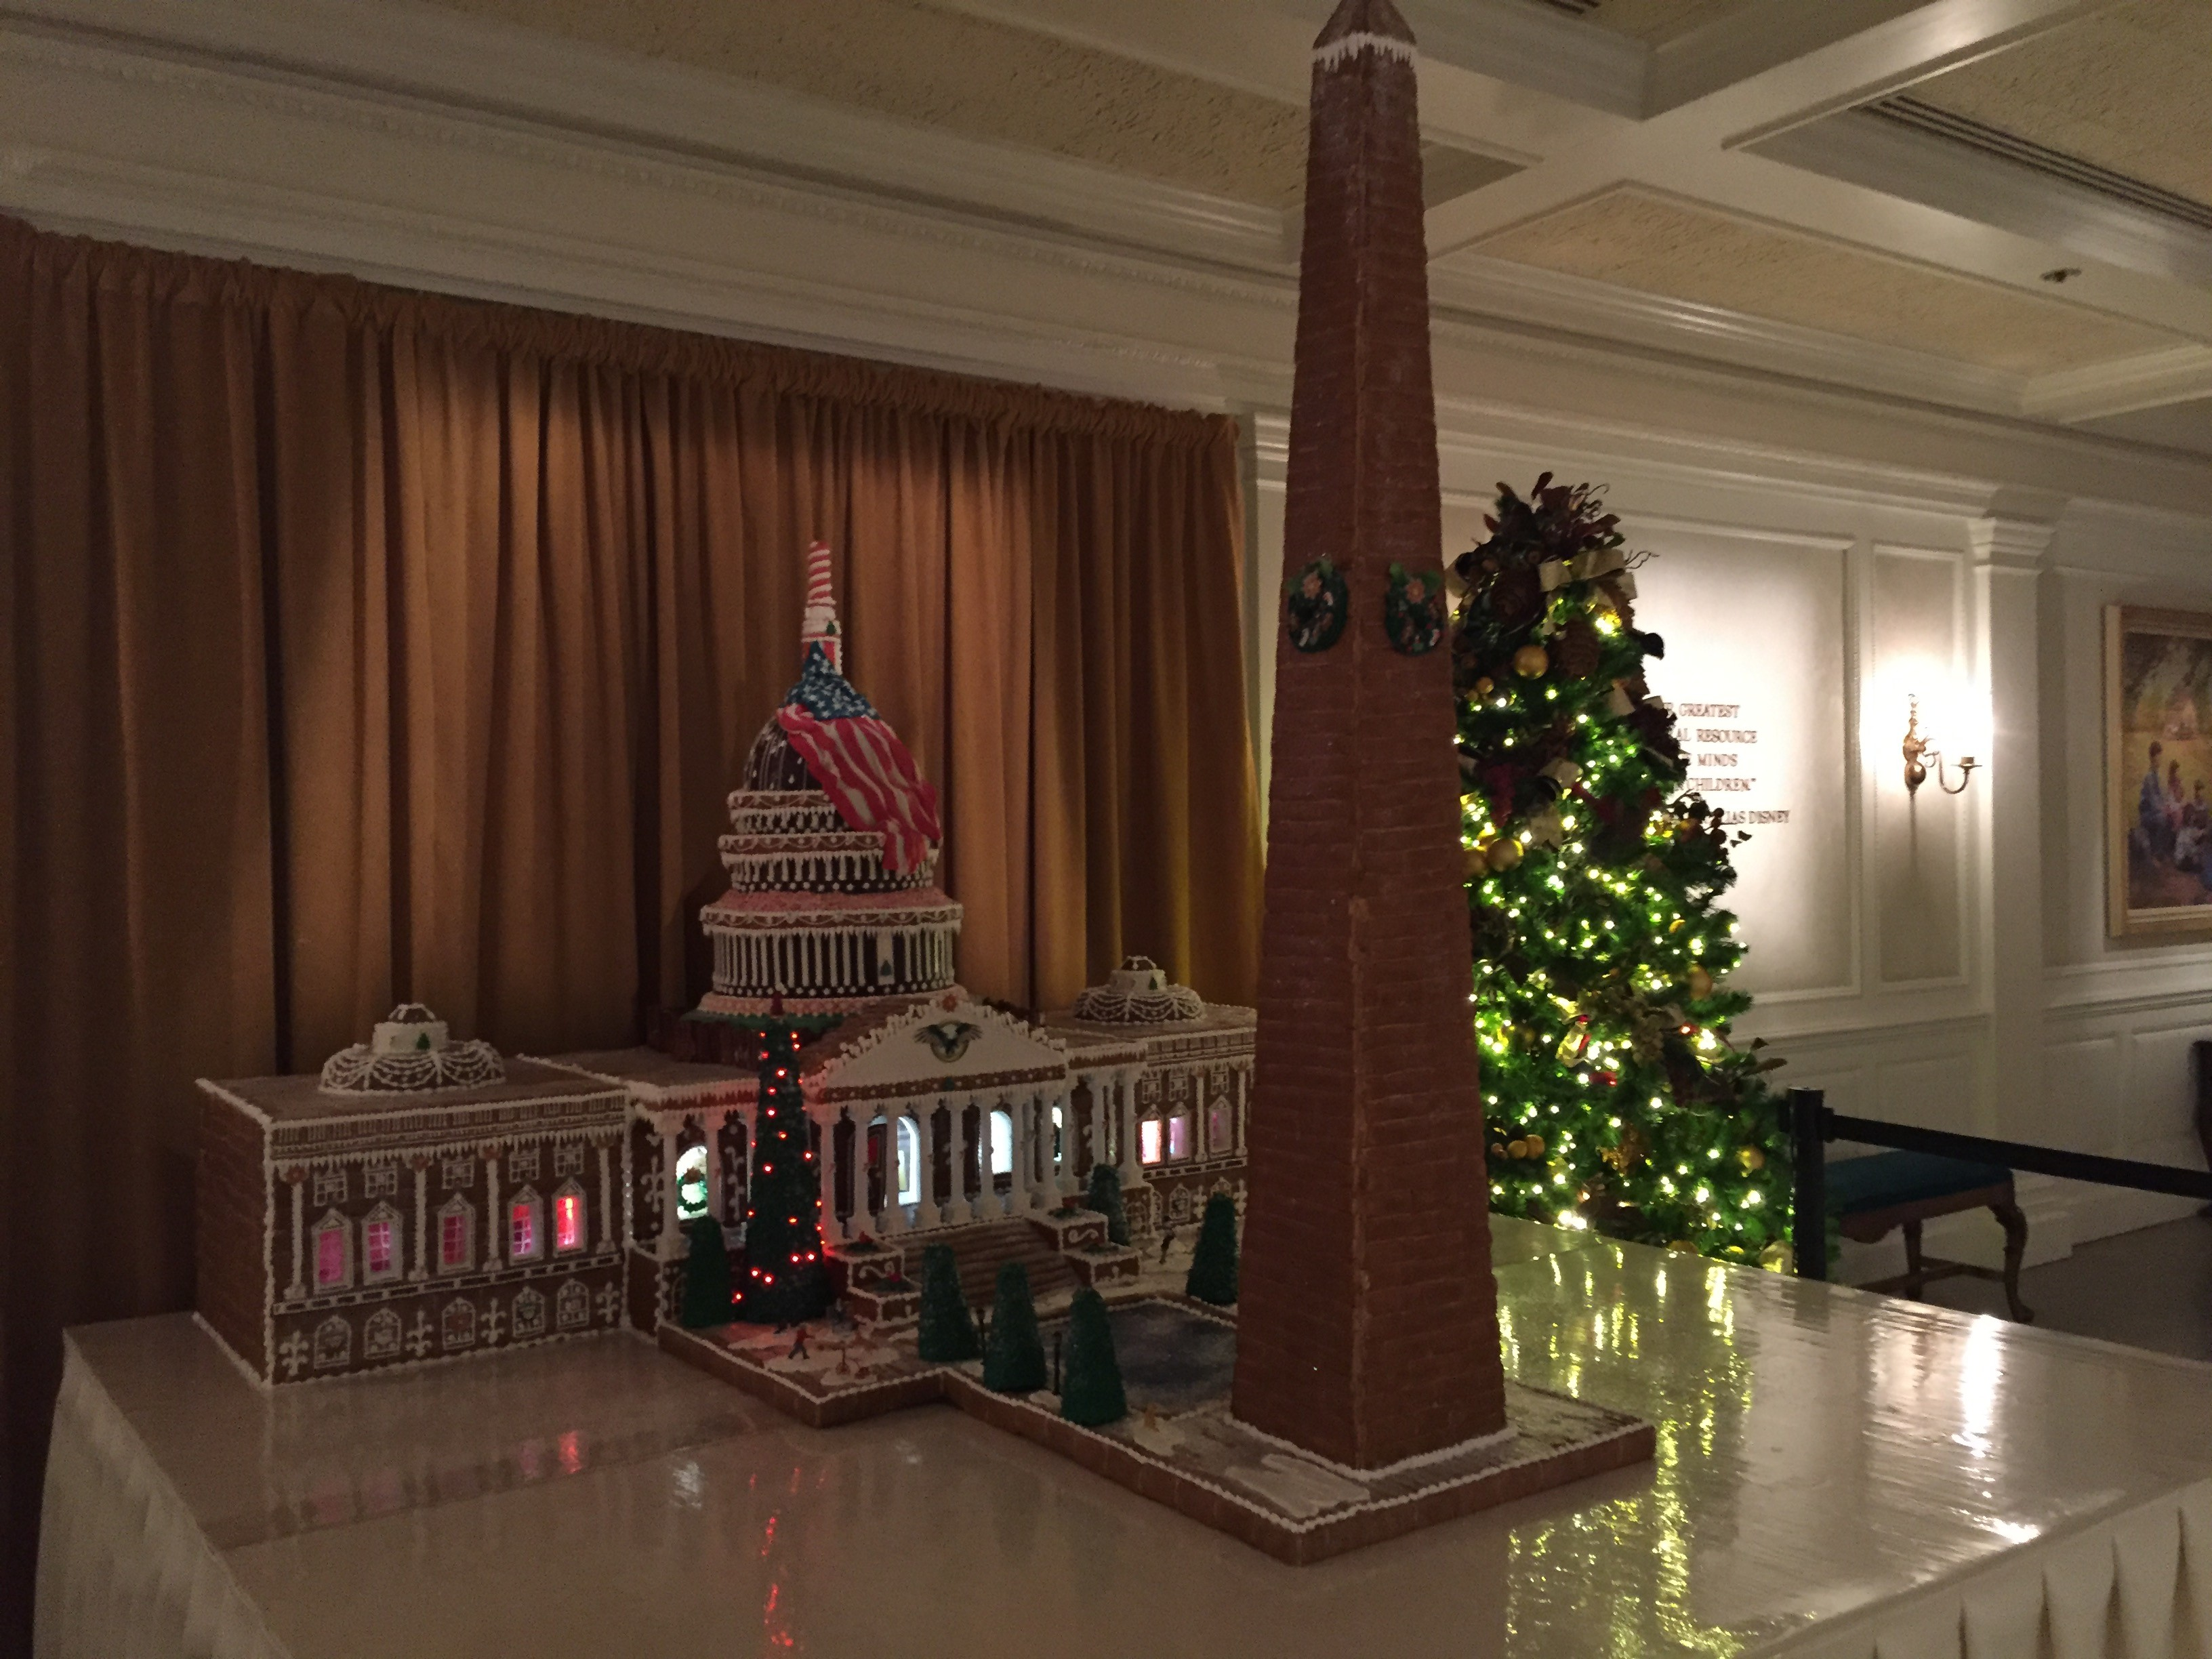 Gingerbread Capitol and Washington Monument